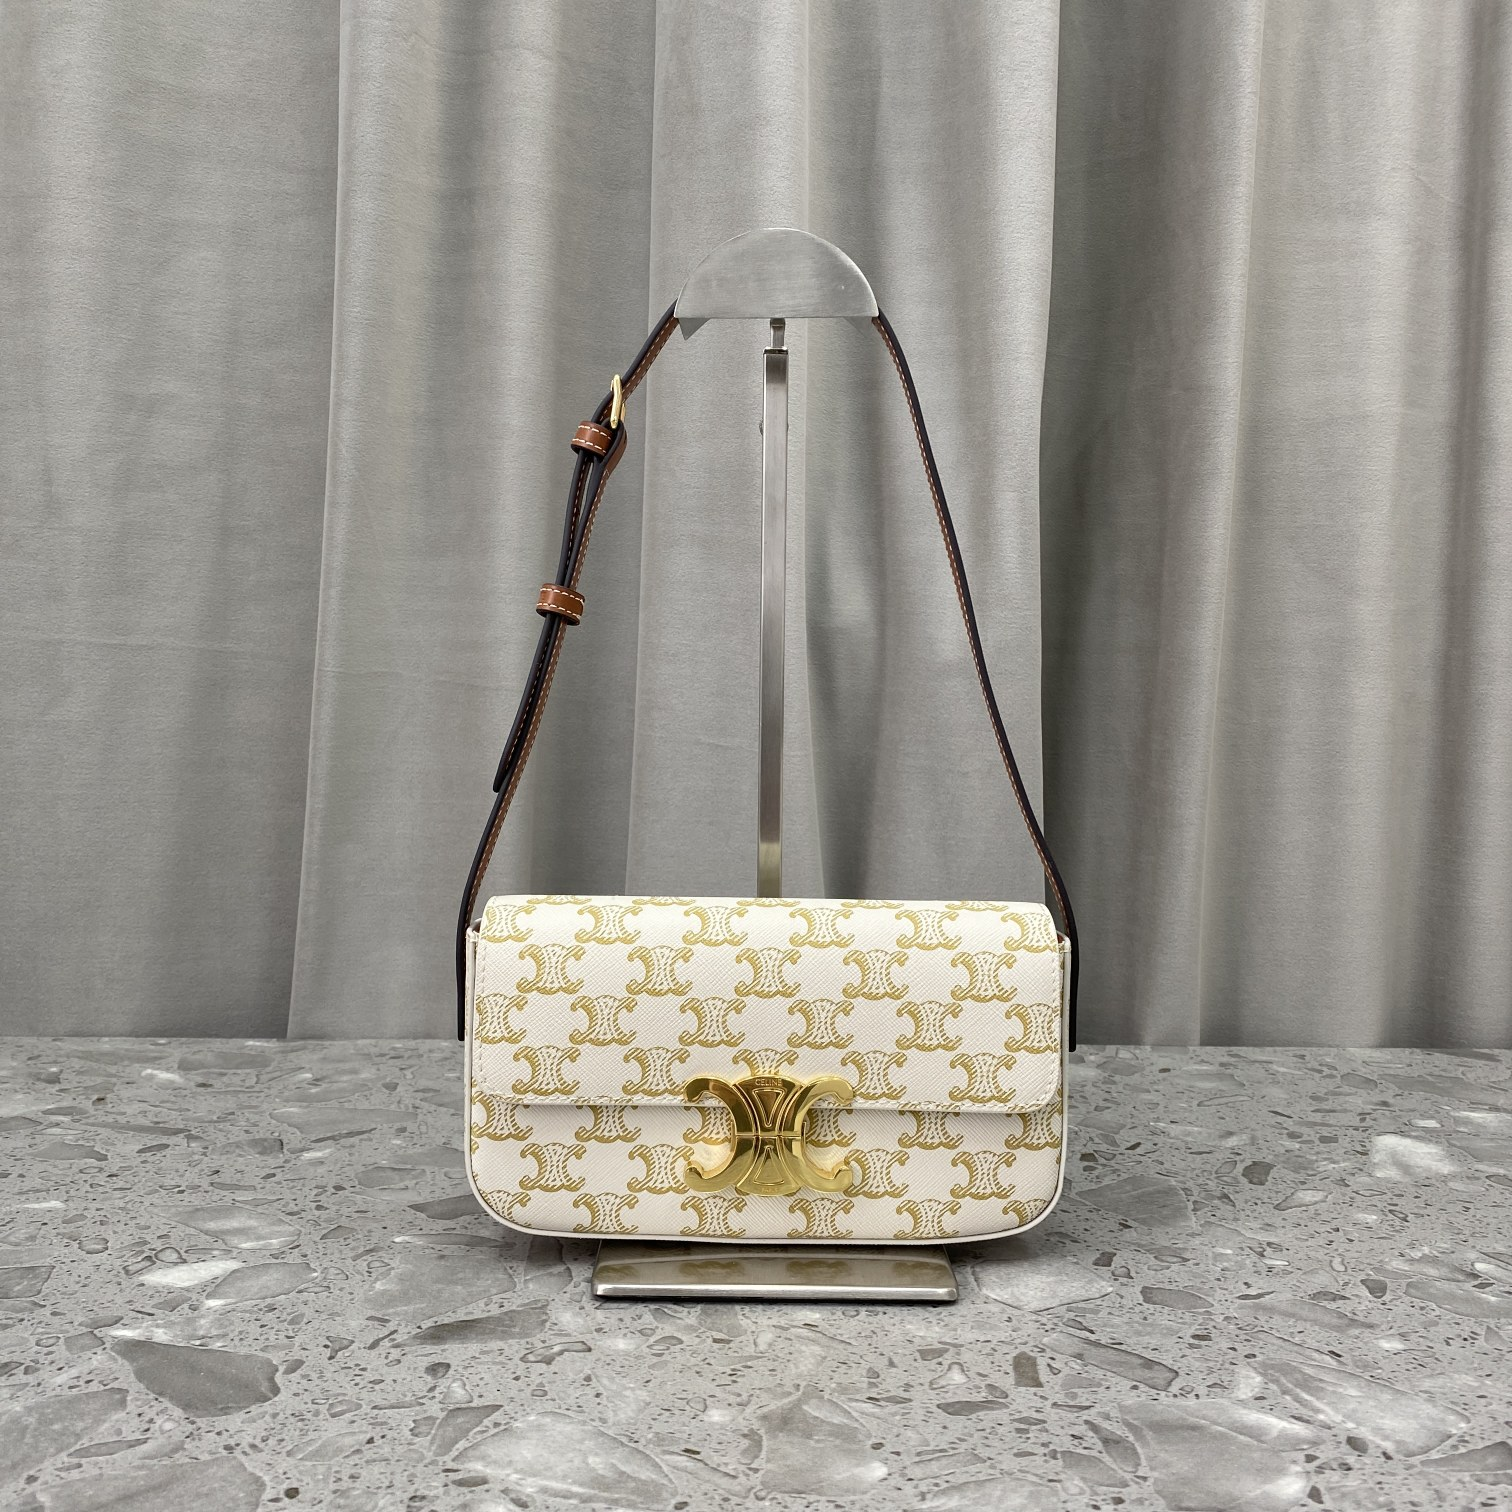 Replica Triomphe Shoulder Bag In Triomphe Canvas And Calfskin White